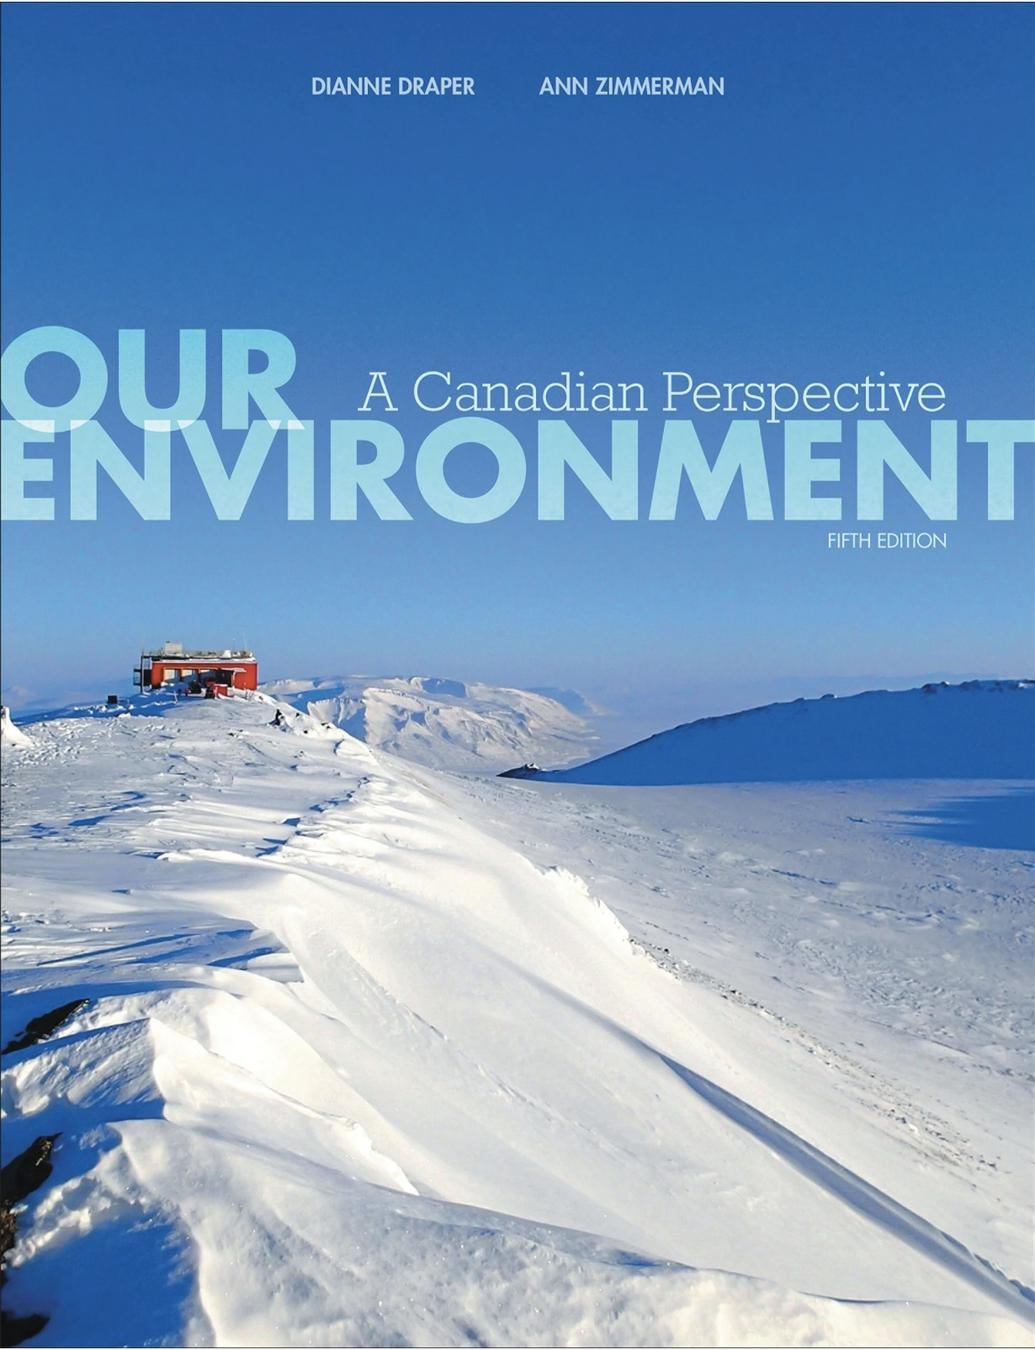 Our Environment: A Canadian Perspective, 5th Edition